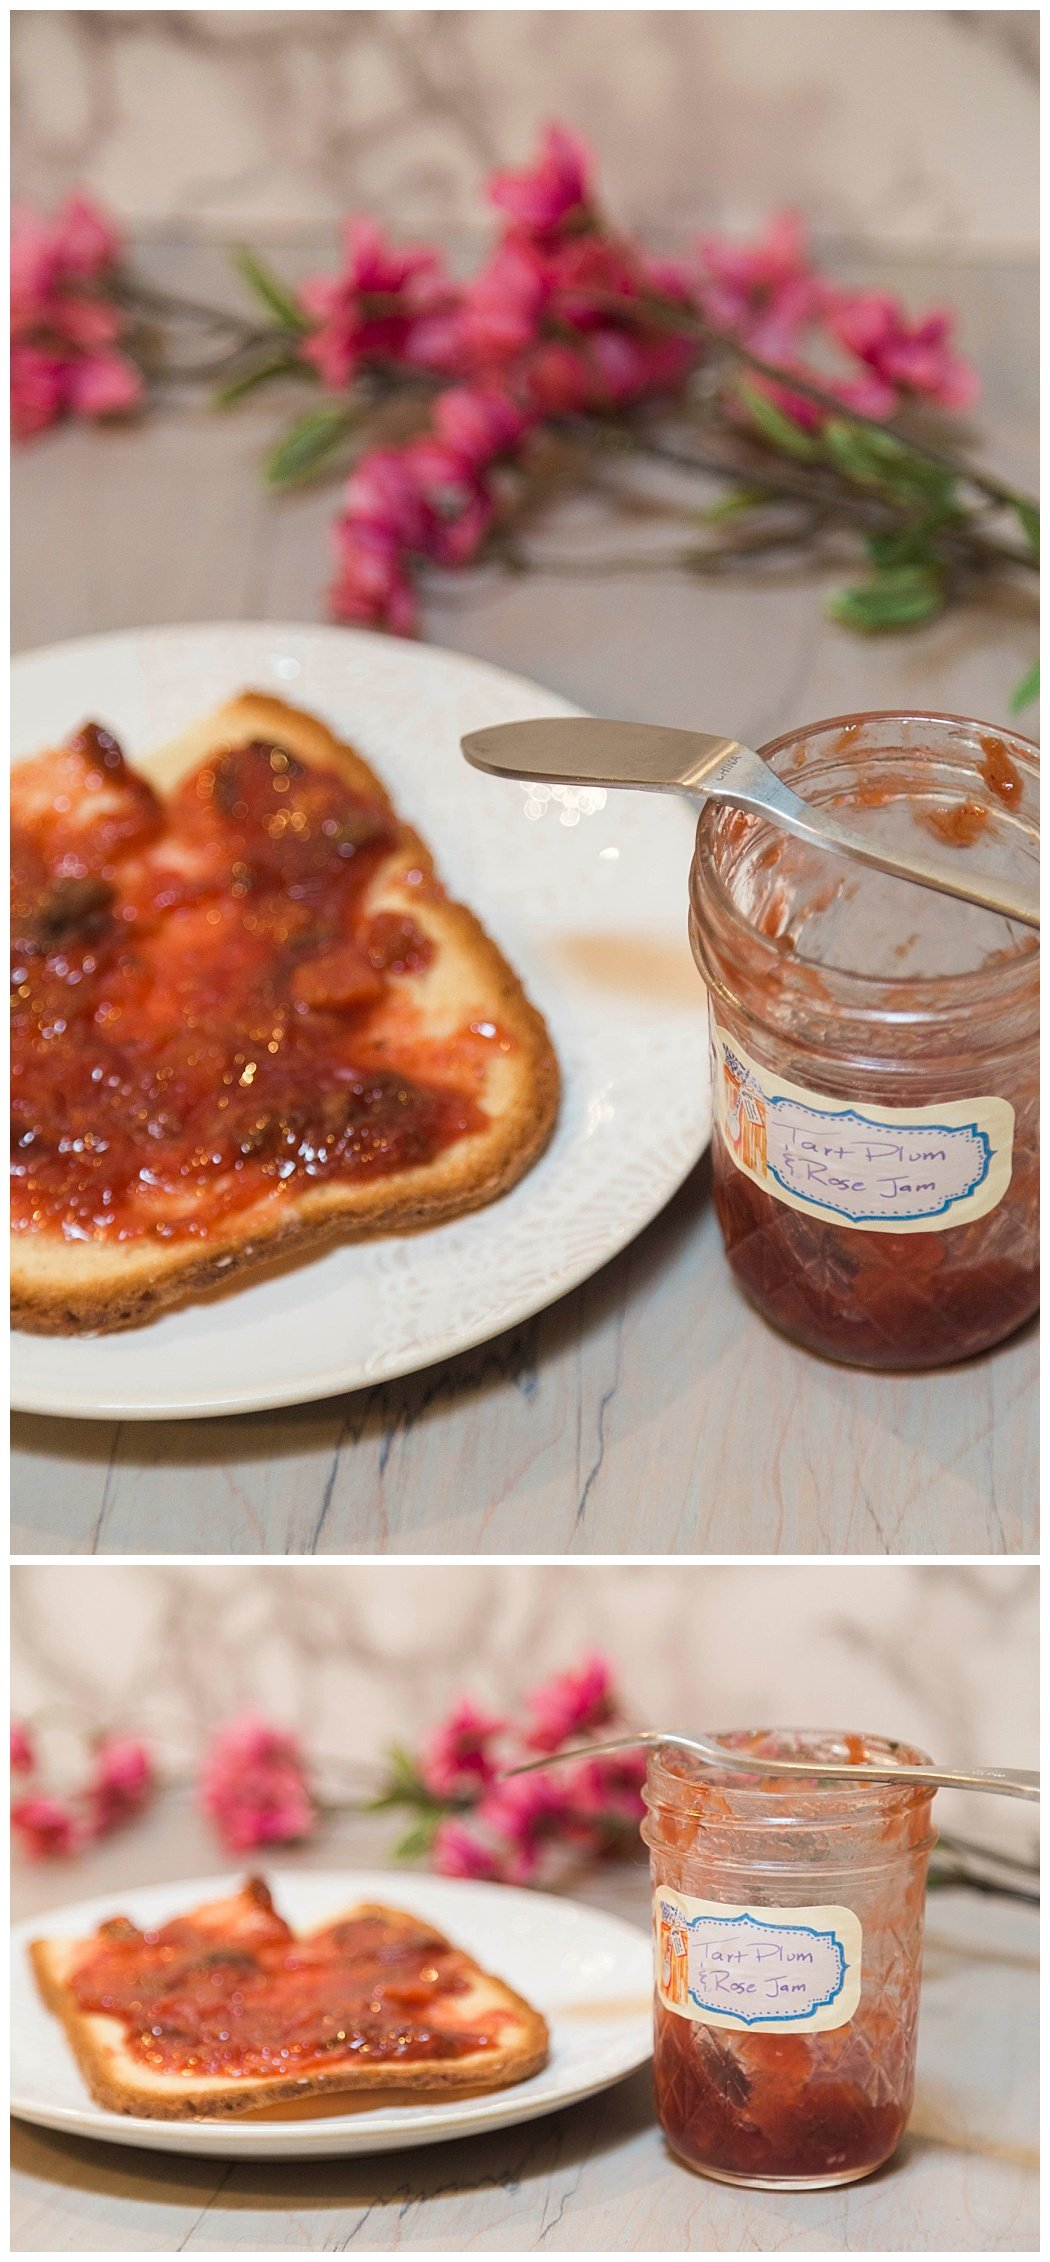 Tart Plum and Rose Jam Low Sugar Jam